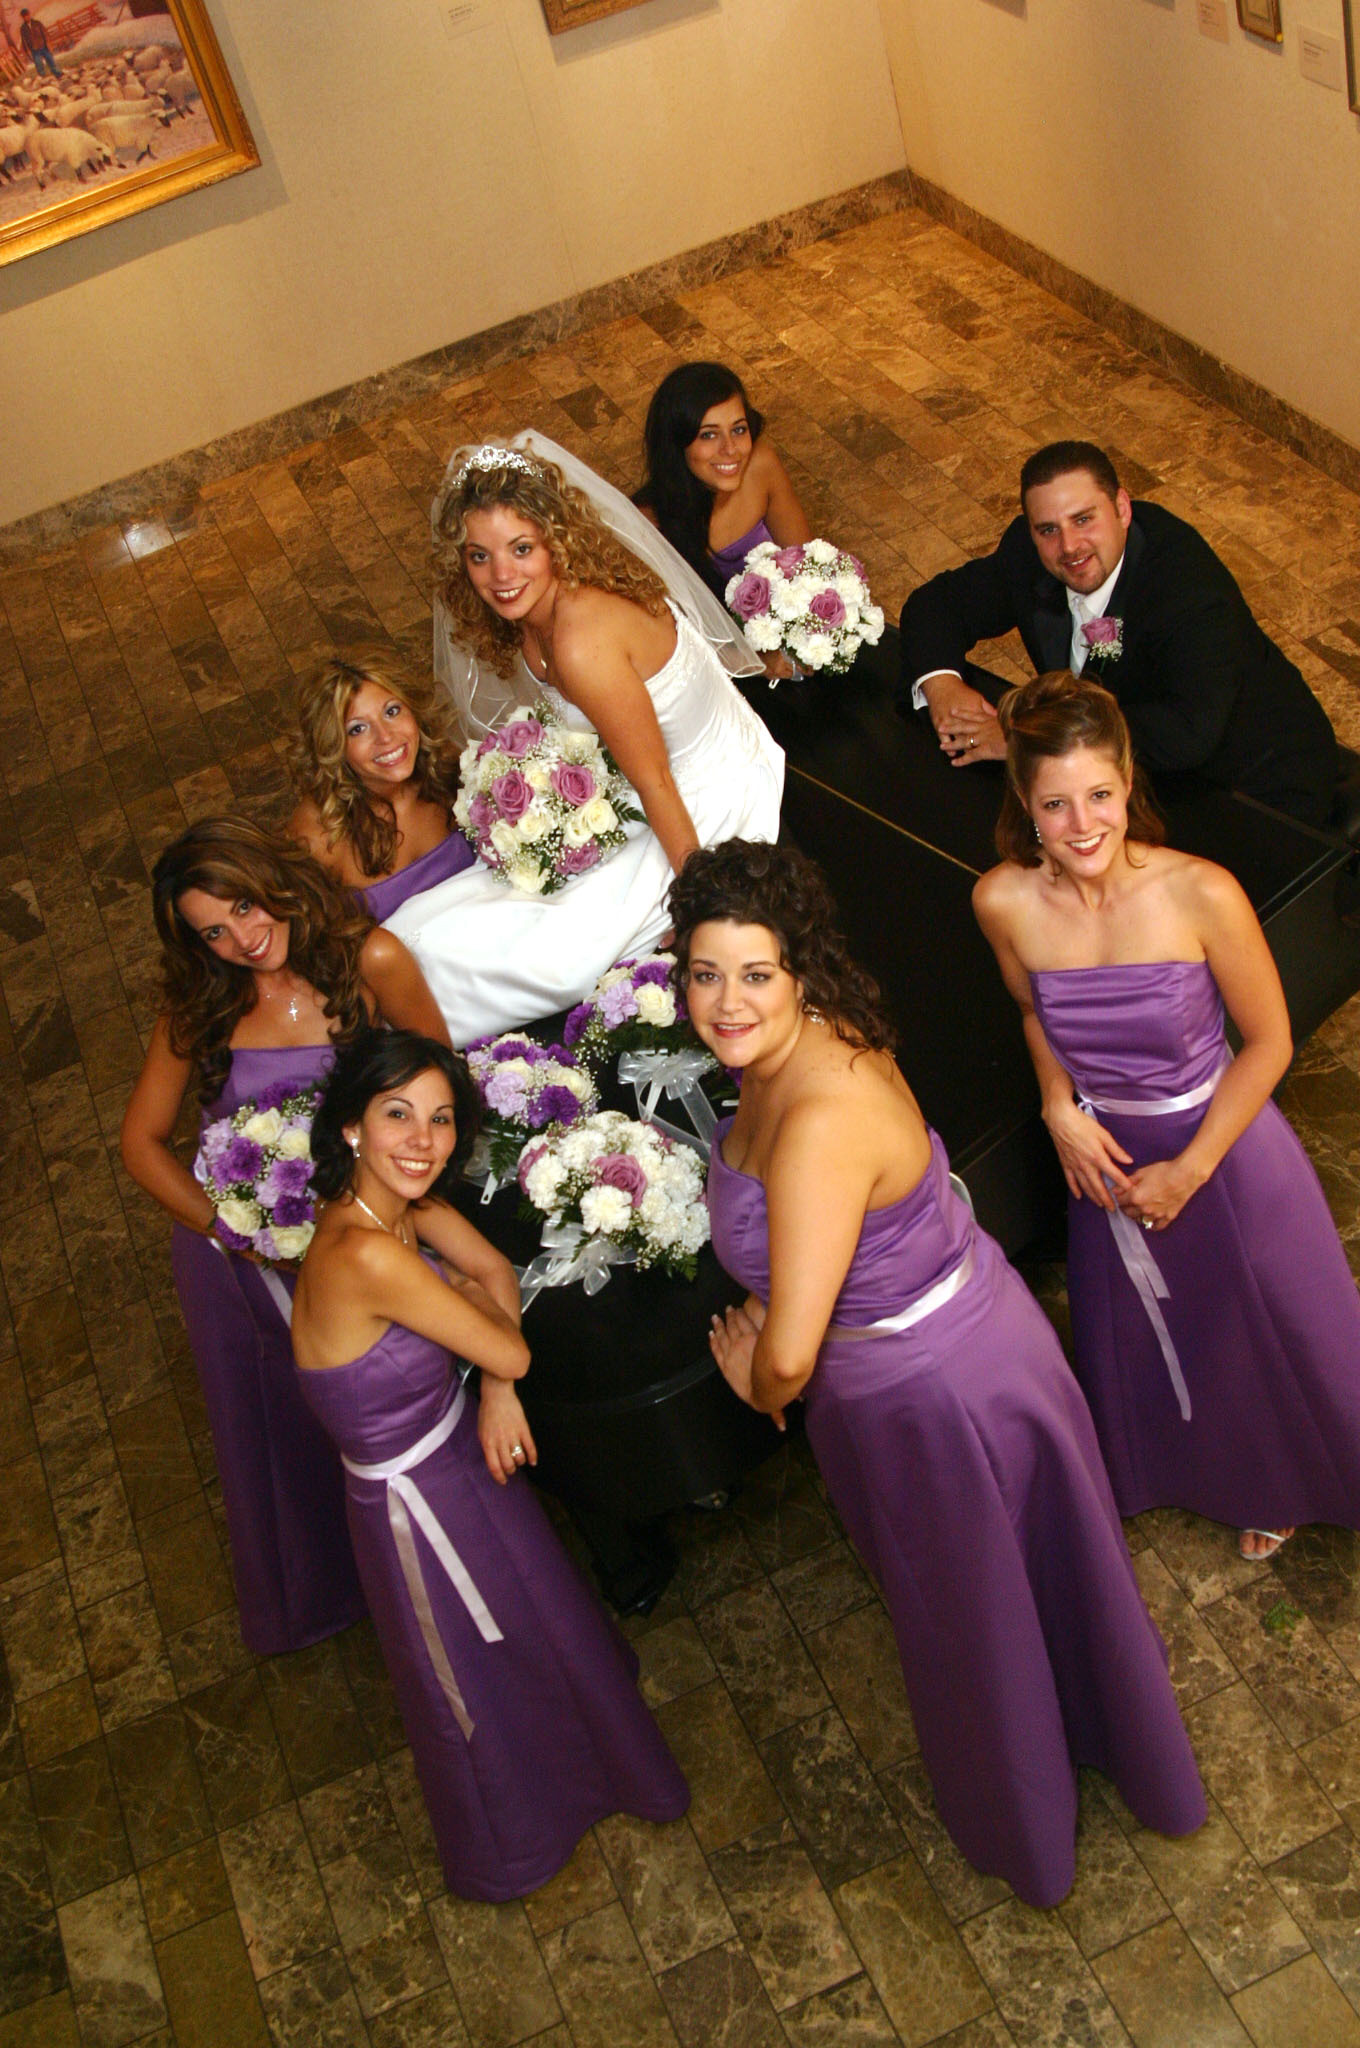 Bridesmaids, Bridesmaids Dresses, Fashion, Bride, Groom, Pictures, Formal, Melissa anne photography, Formal Wedding Dresses